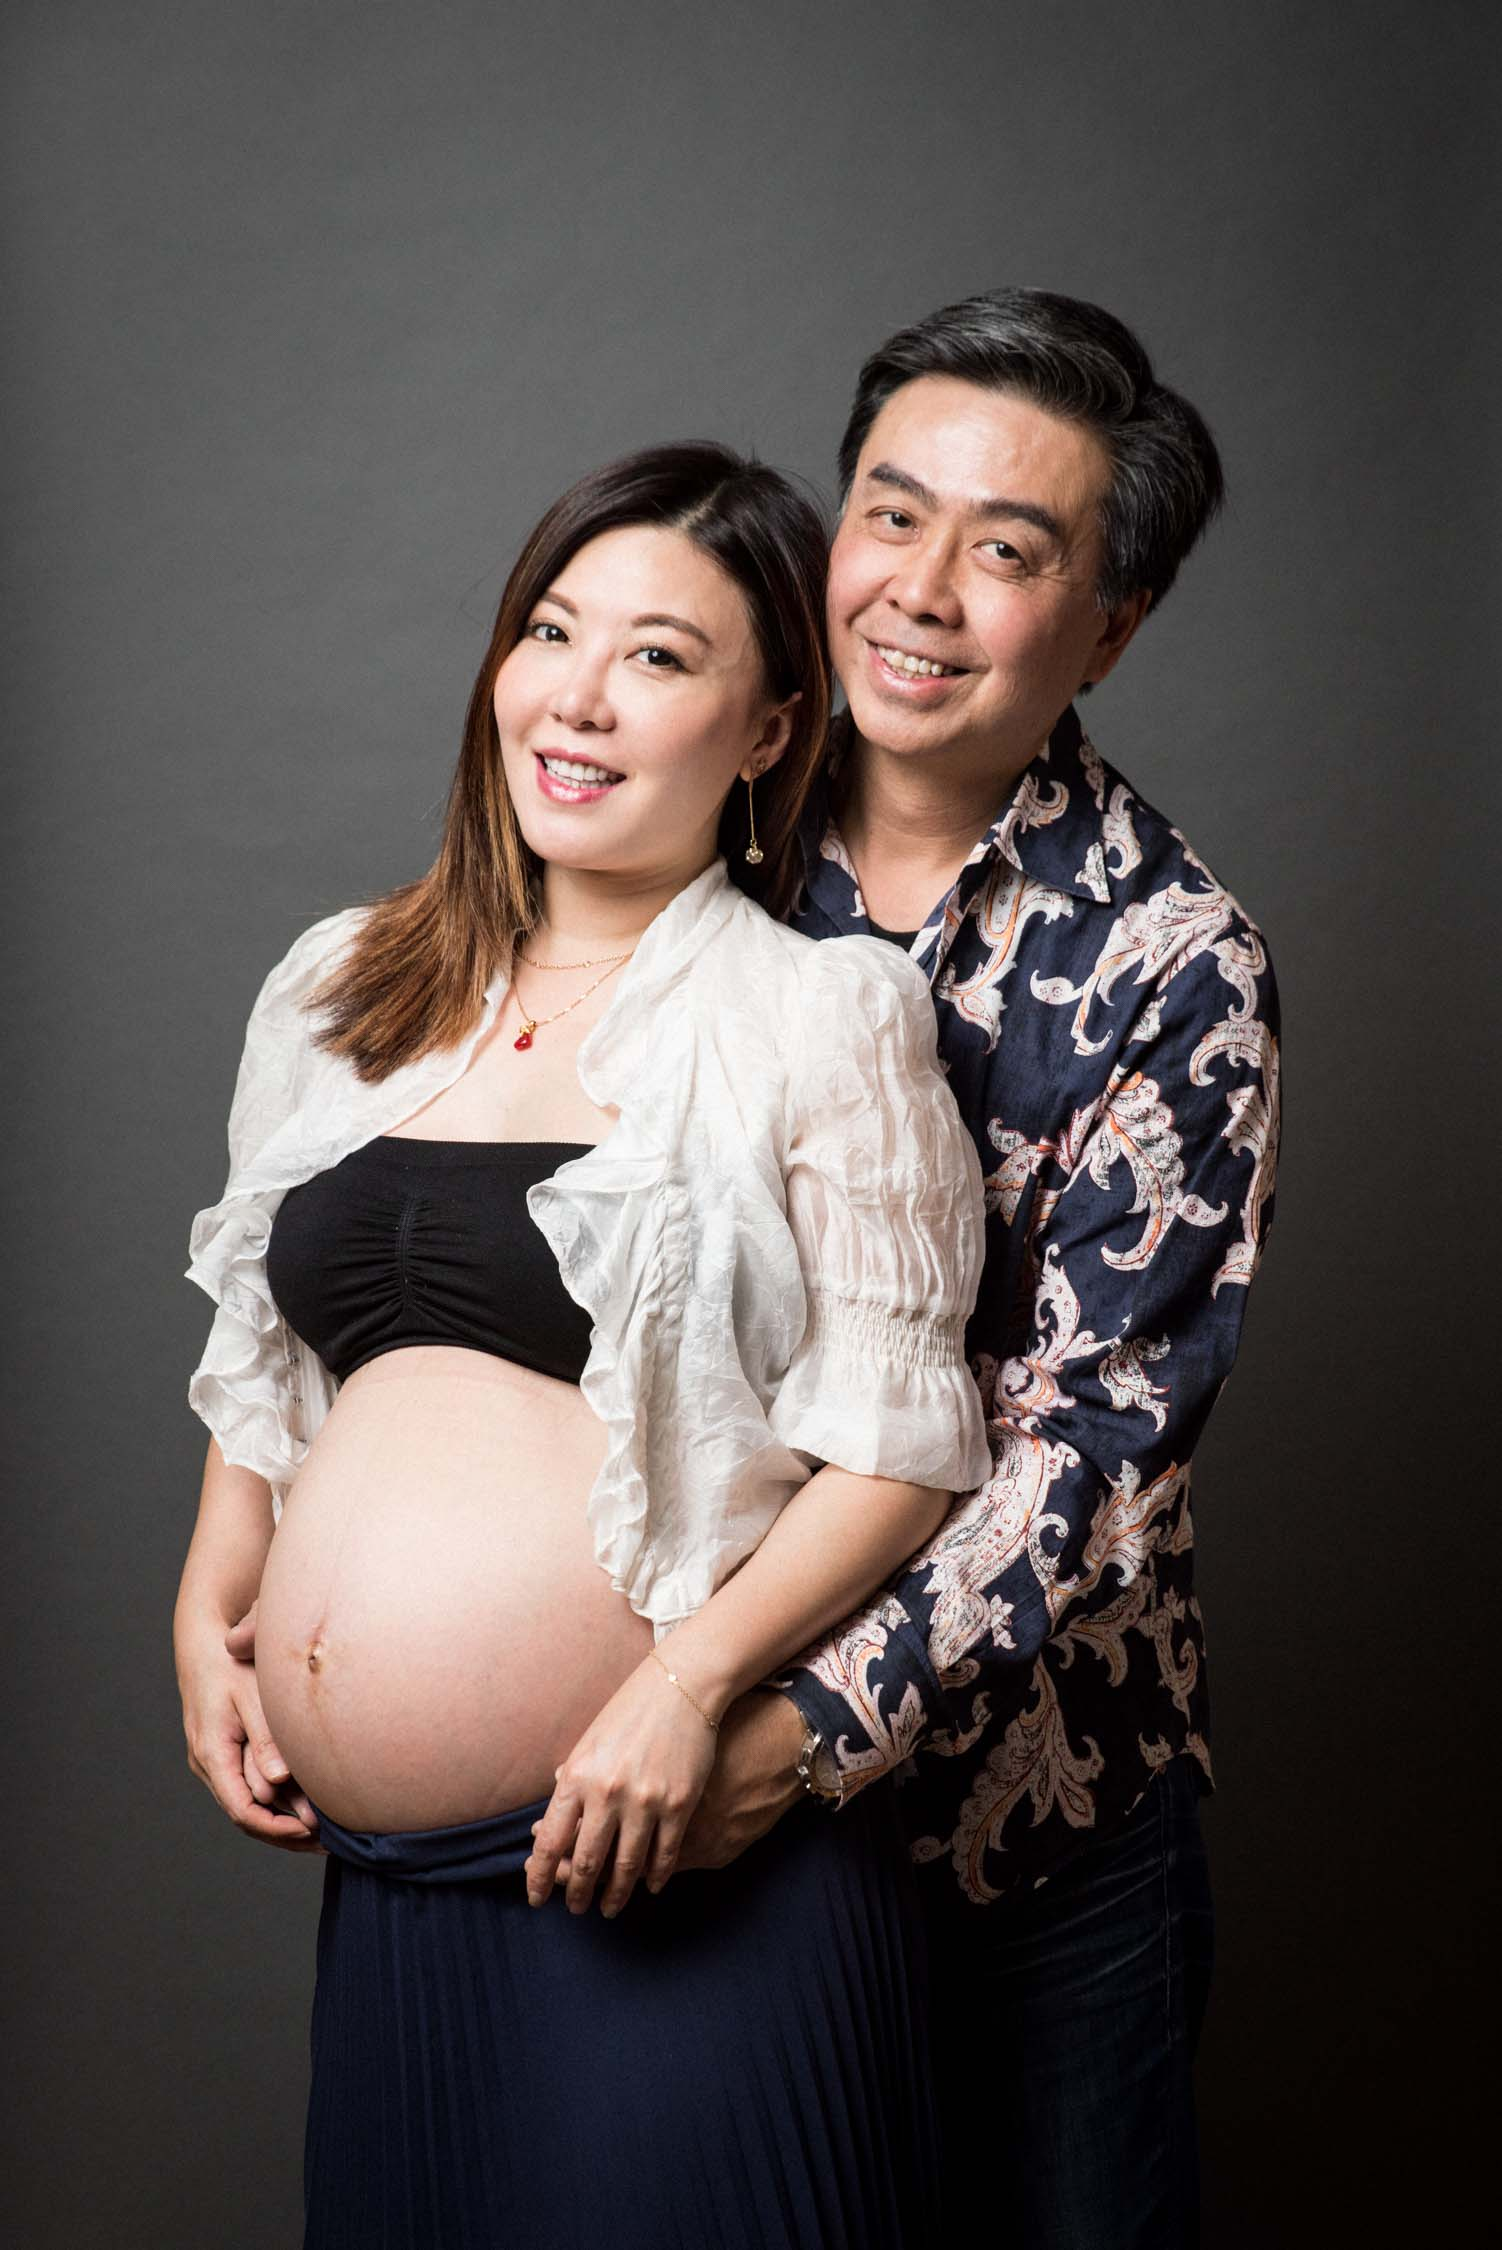 2_goldengatepark_maternity_photographer.jpg